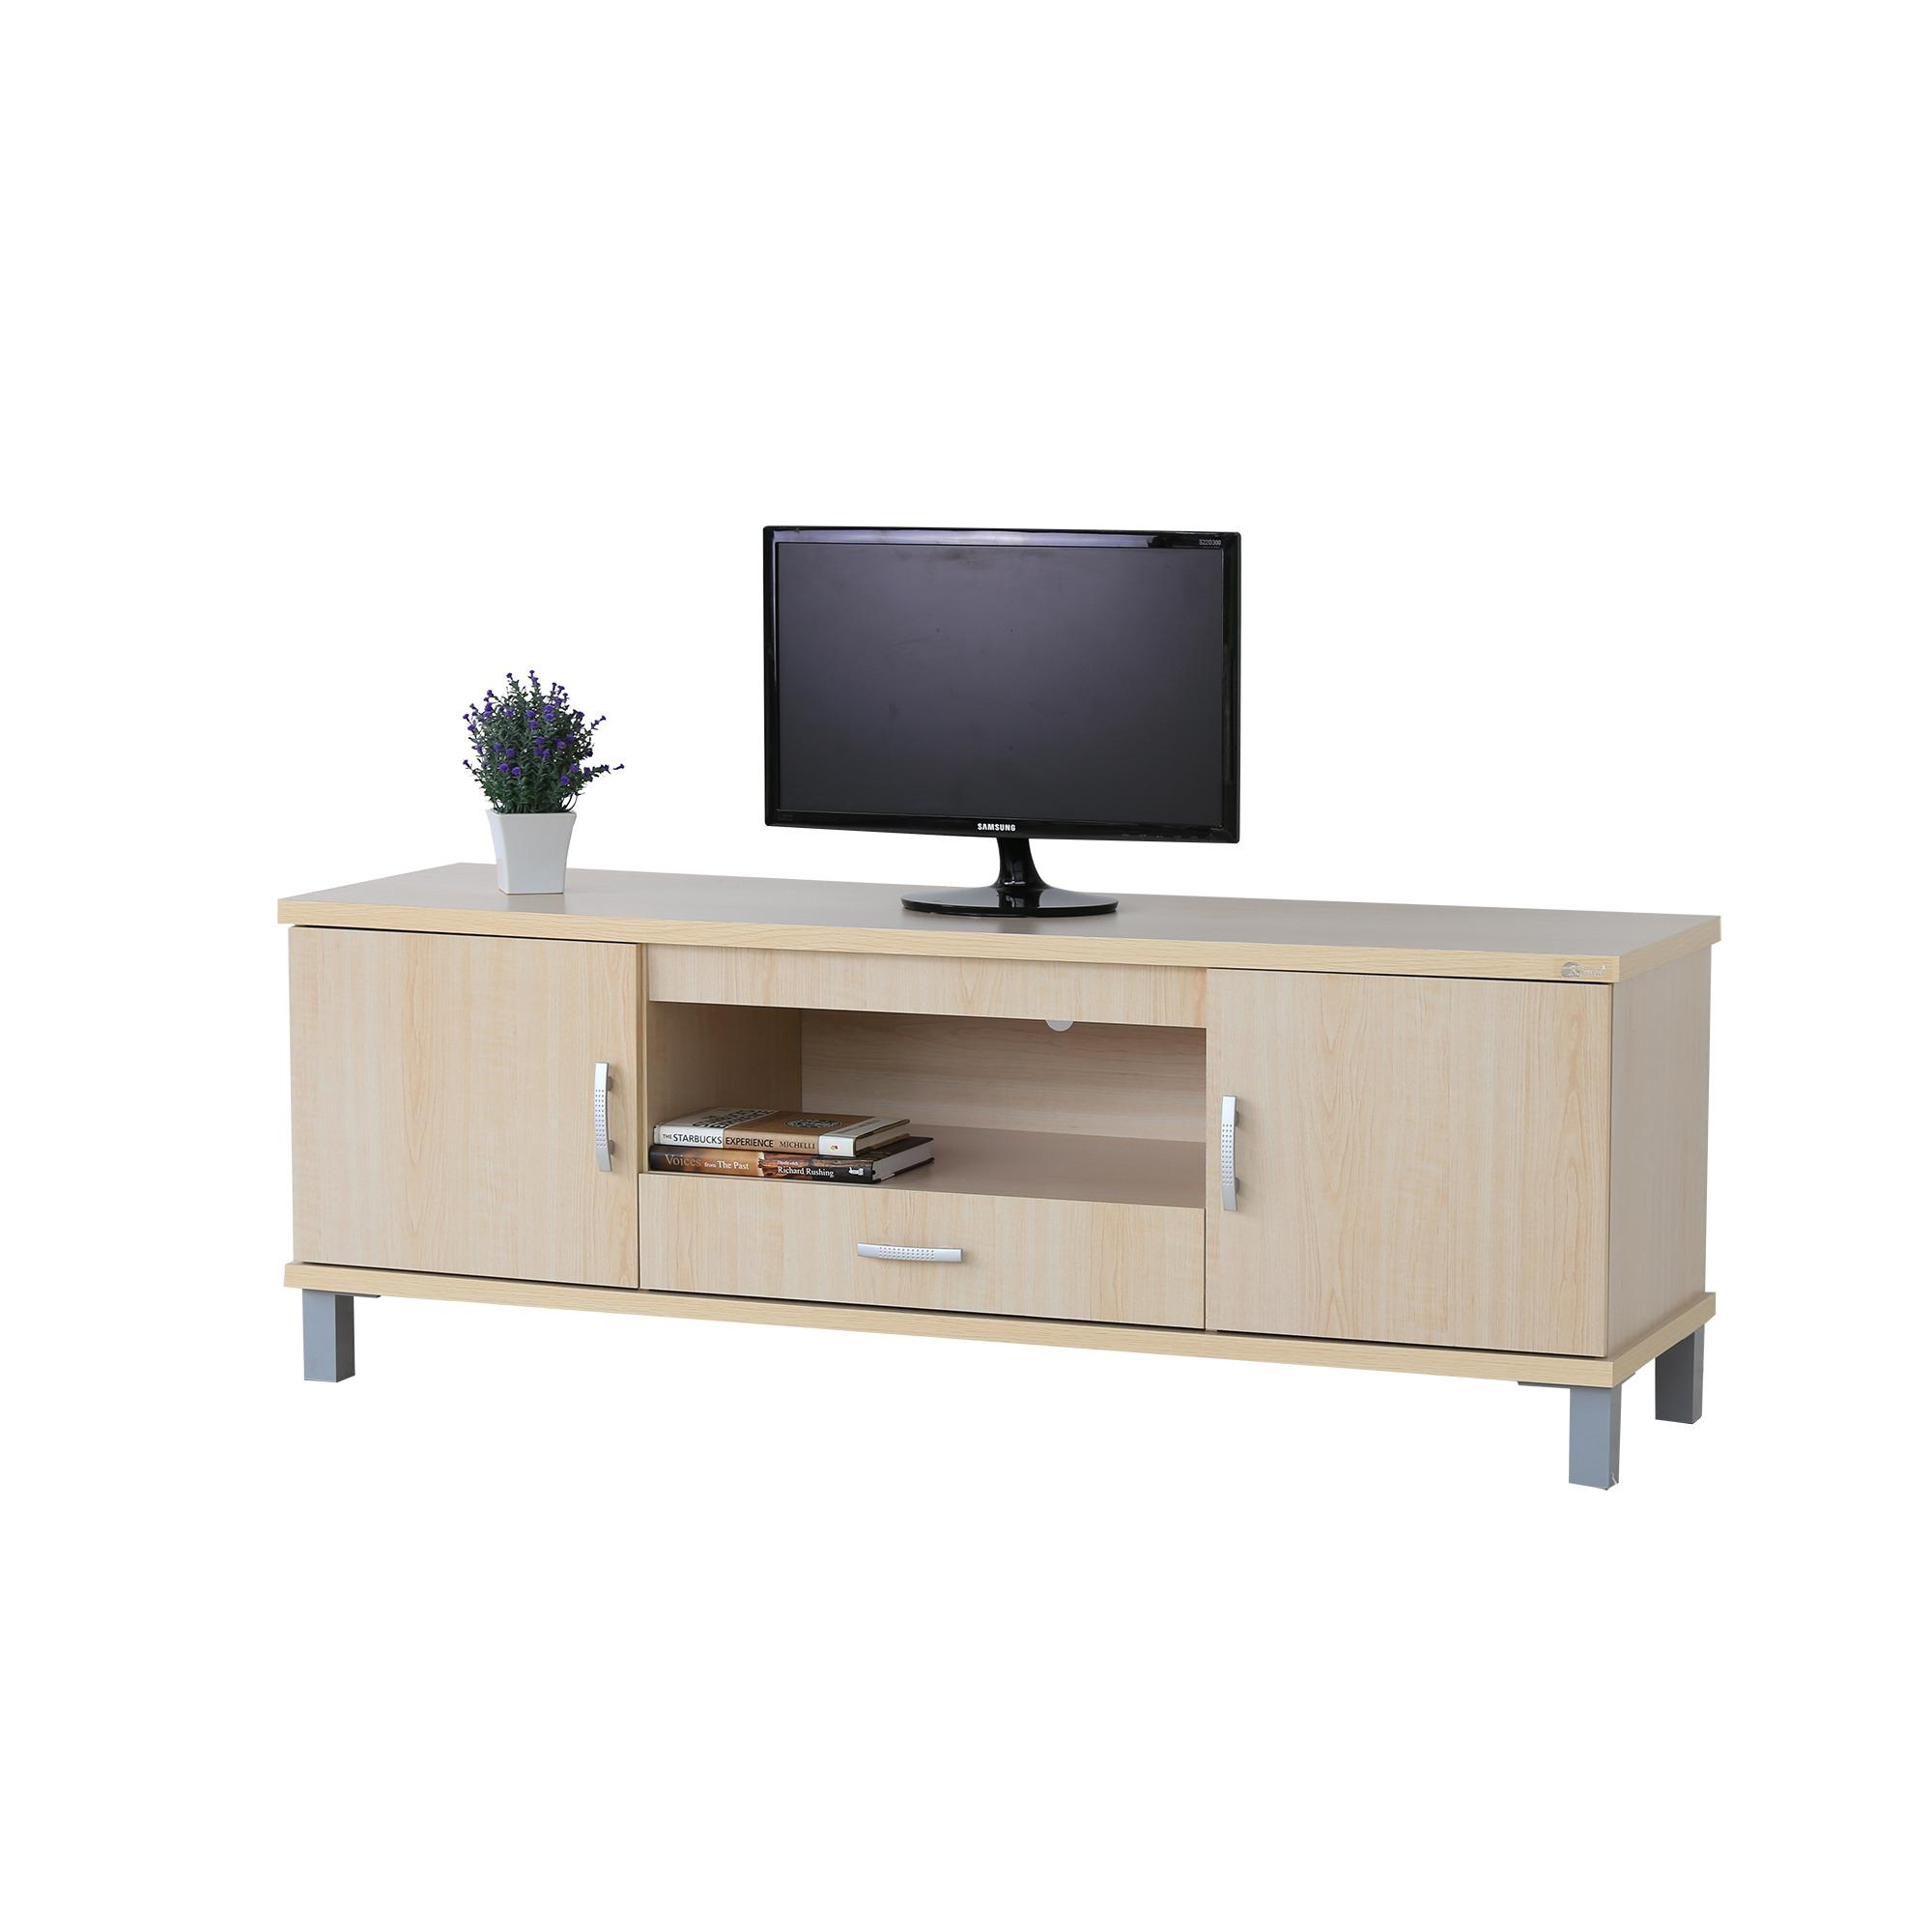 Kirana Furniture - Rak TV / Audio Rack / Meja TV BF 845 WO